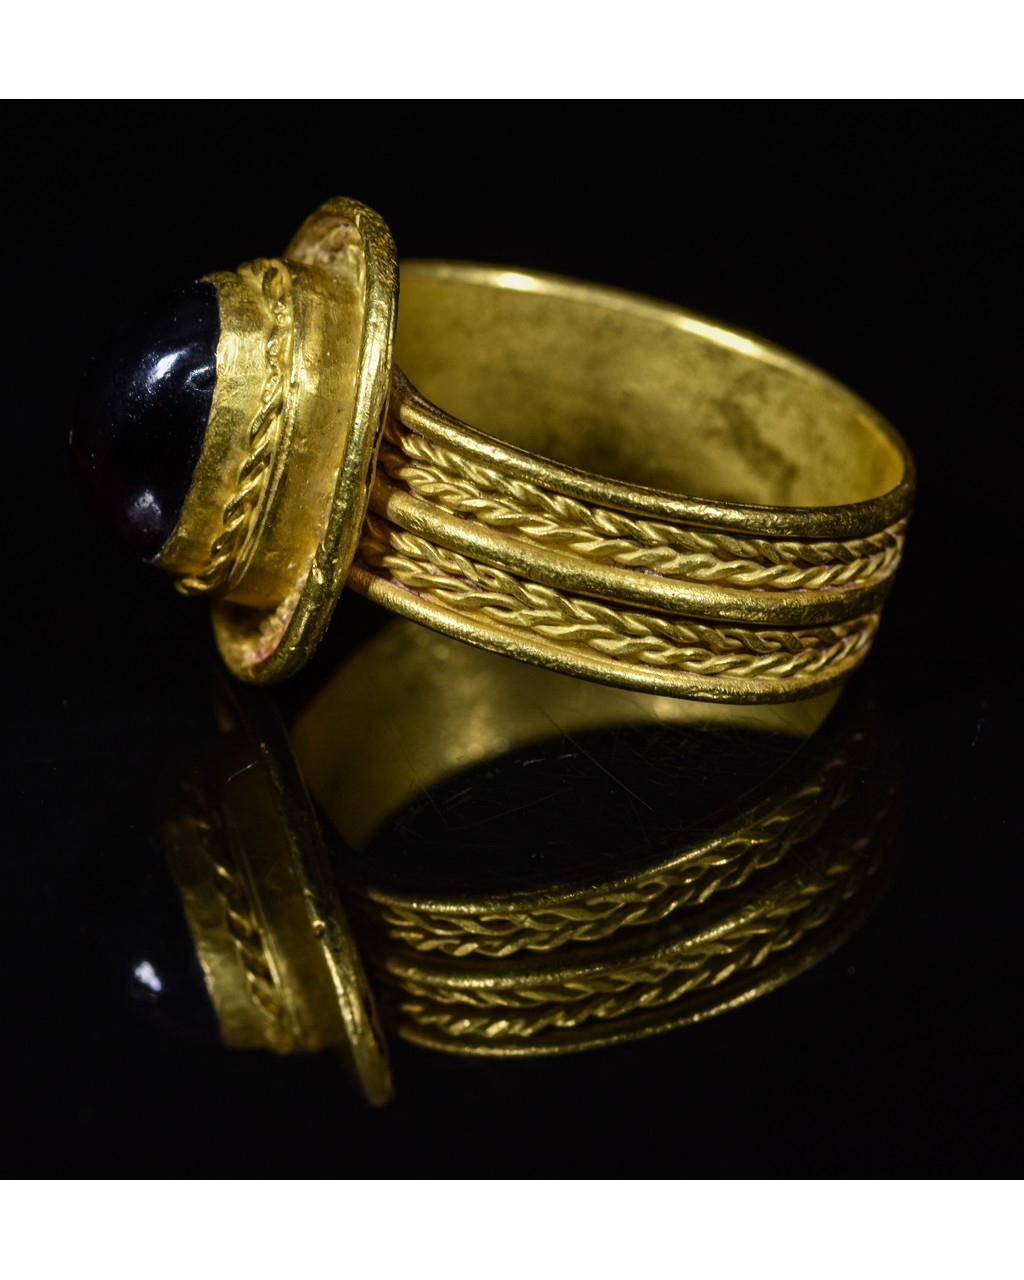 Lot 5 - MEROVINGIAN GOLD RING WITH GARNET STONE